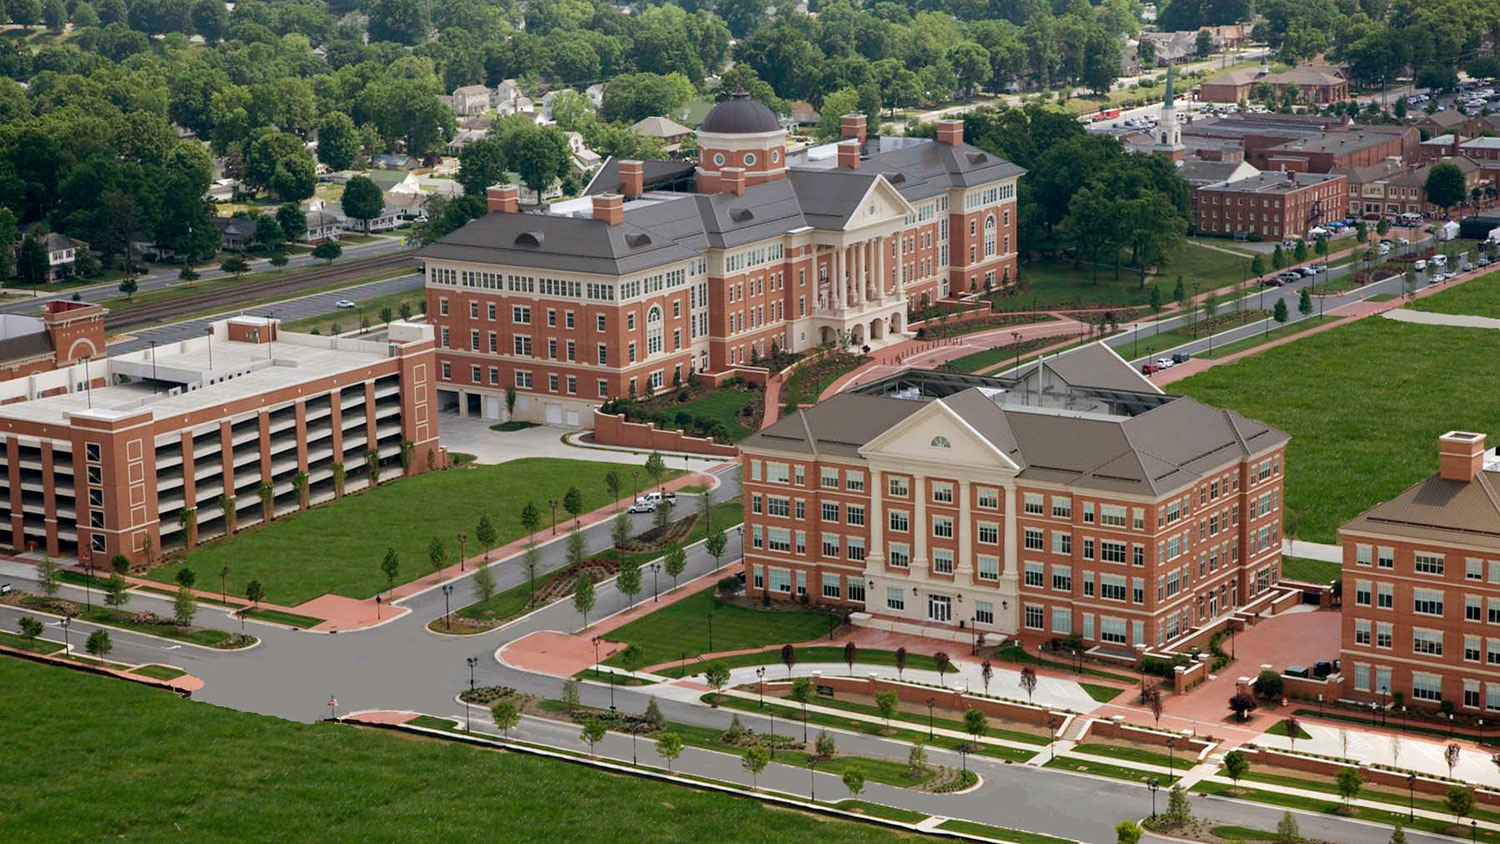 Aerial photo of North Carolina Research Campus in Kannapolis